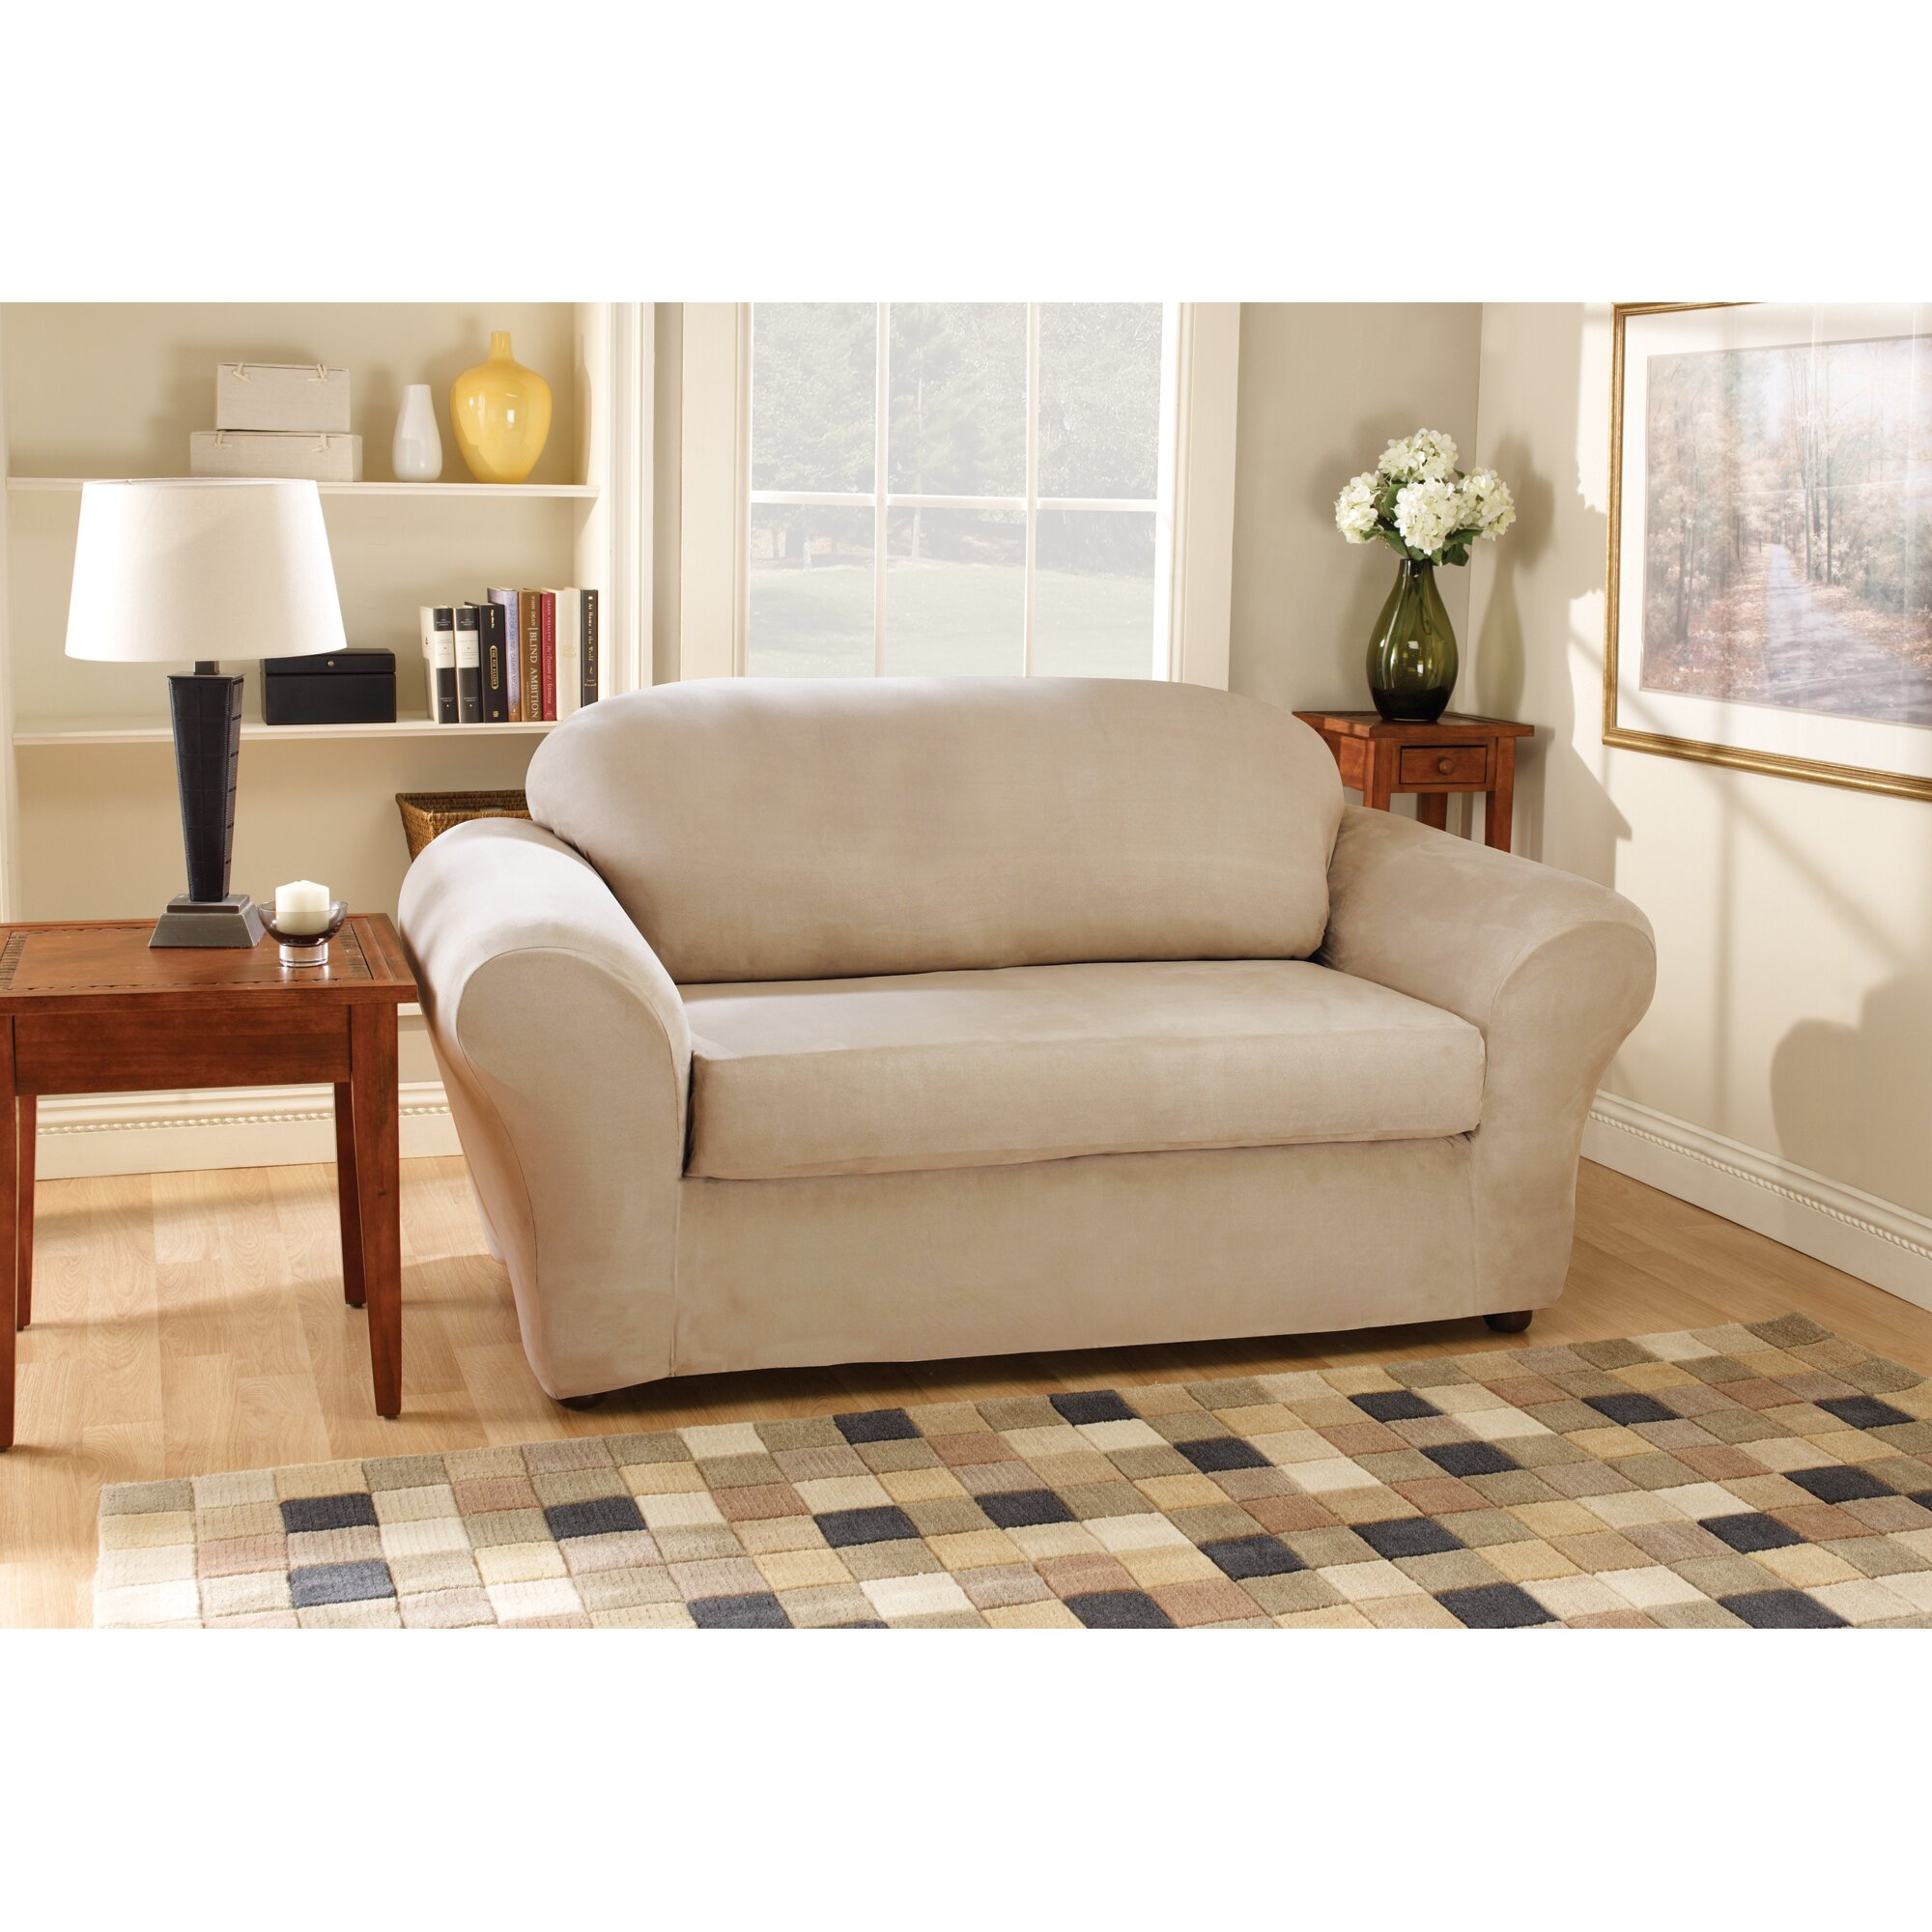 Sure fit stretch suede sofa slipcover Loveseat slipcover